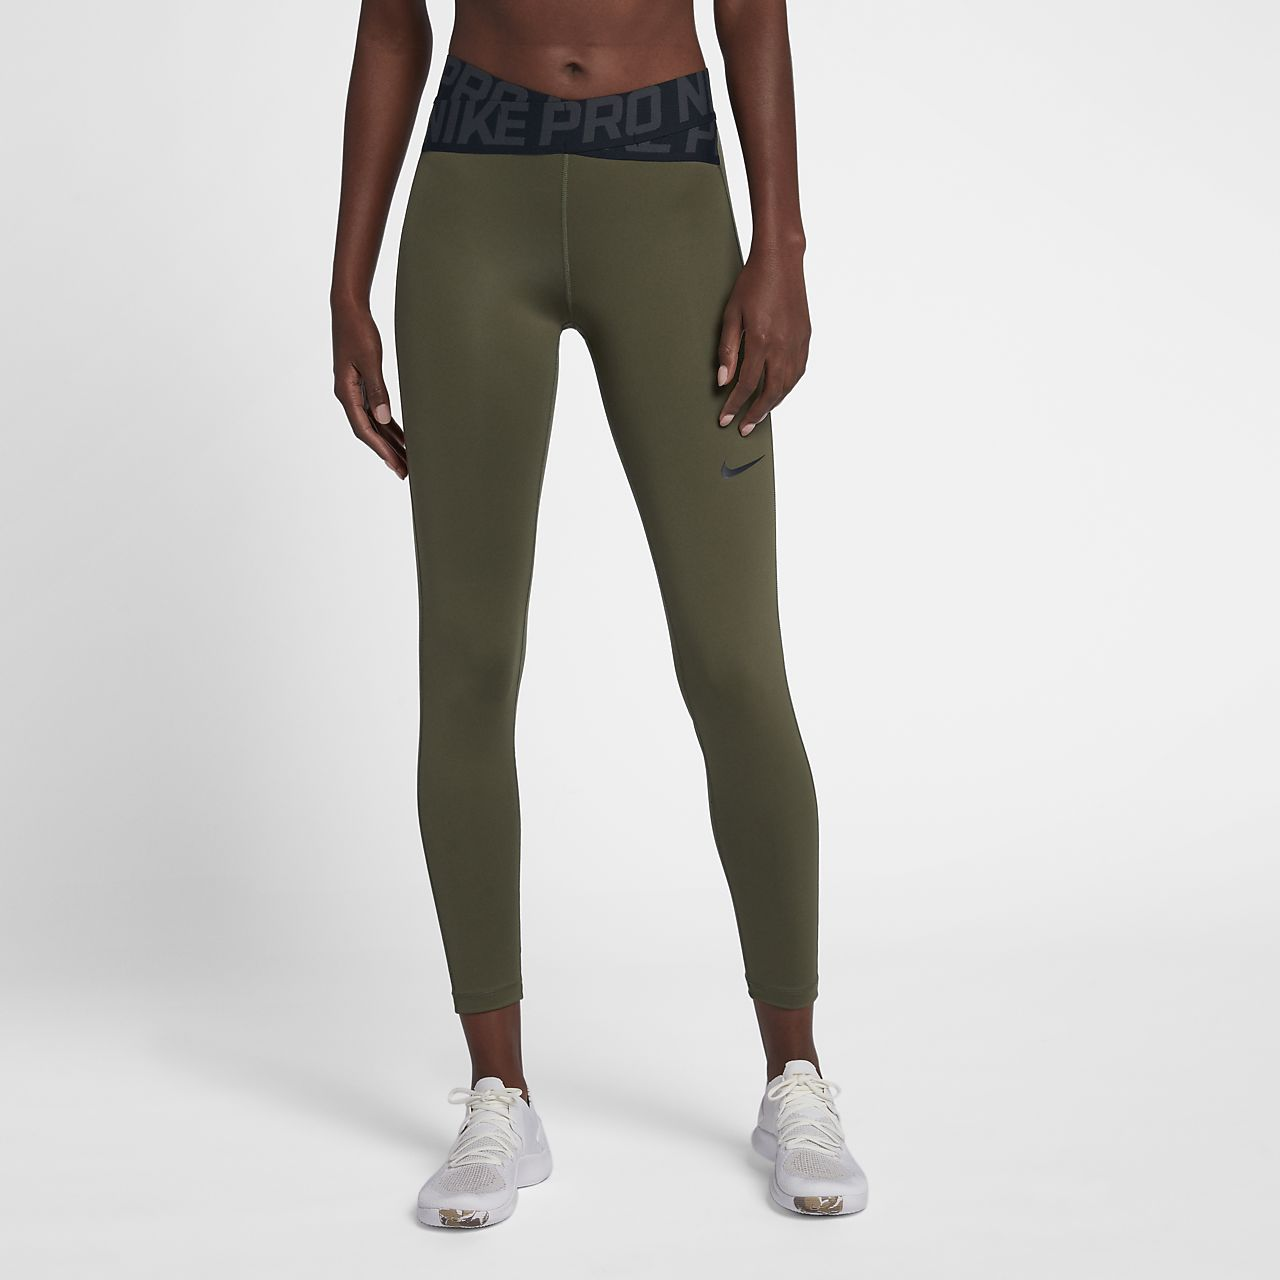 d062249b1d Nike Pro Intertwist Women s High-Rise Training Tights. Nike.com GB